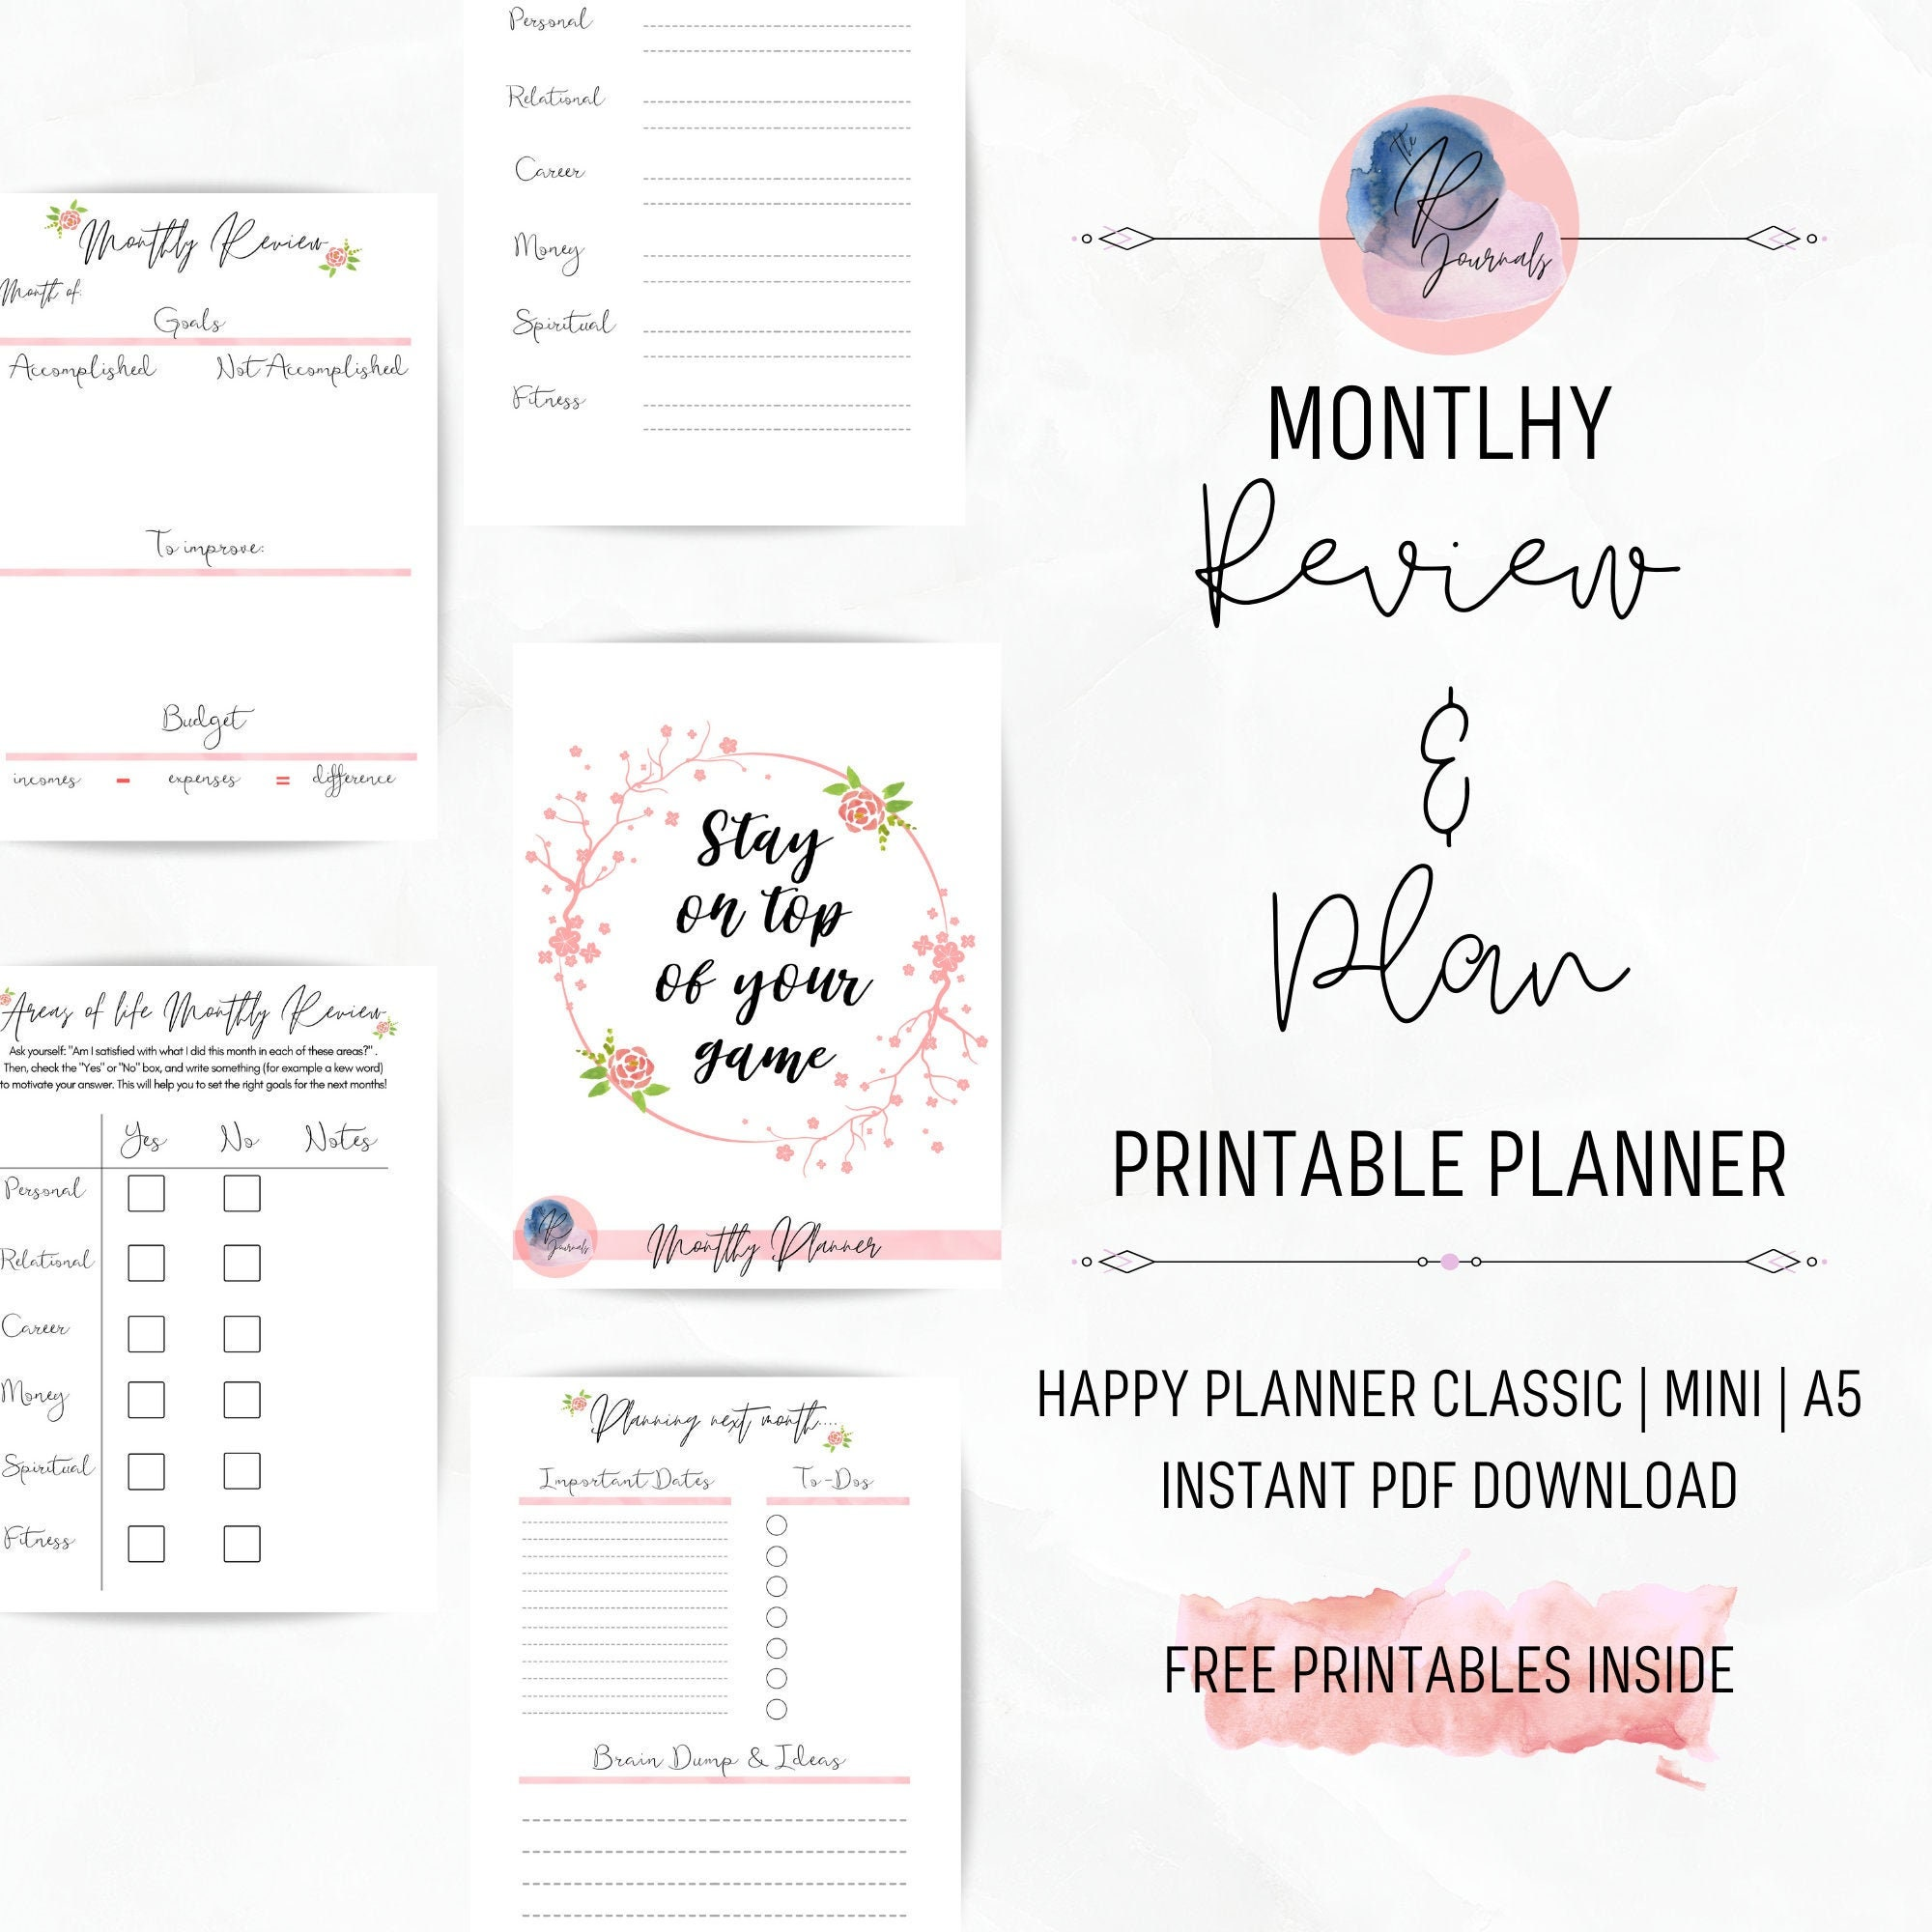 FREEBIES Printable Planner Monthly Planner Review and Plan Customizable,  Pink, Happy Planner Classic, Mini, A20, Instant PDF Download, Insert